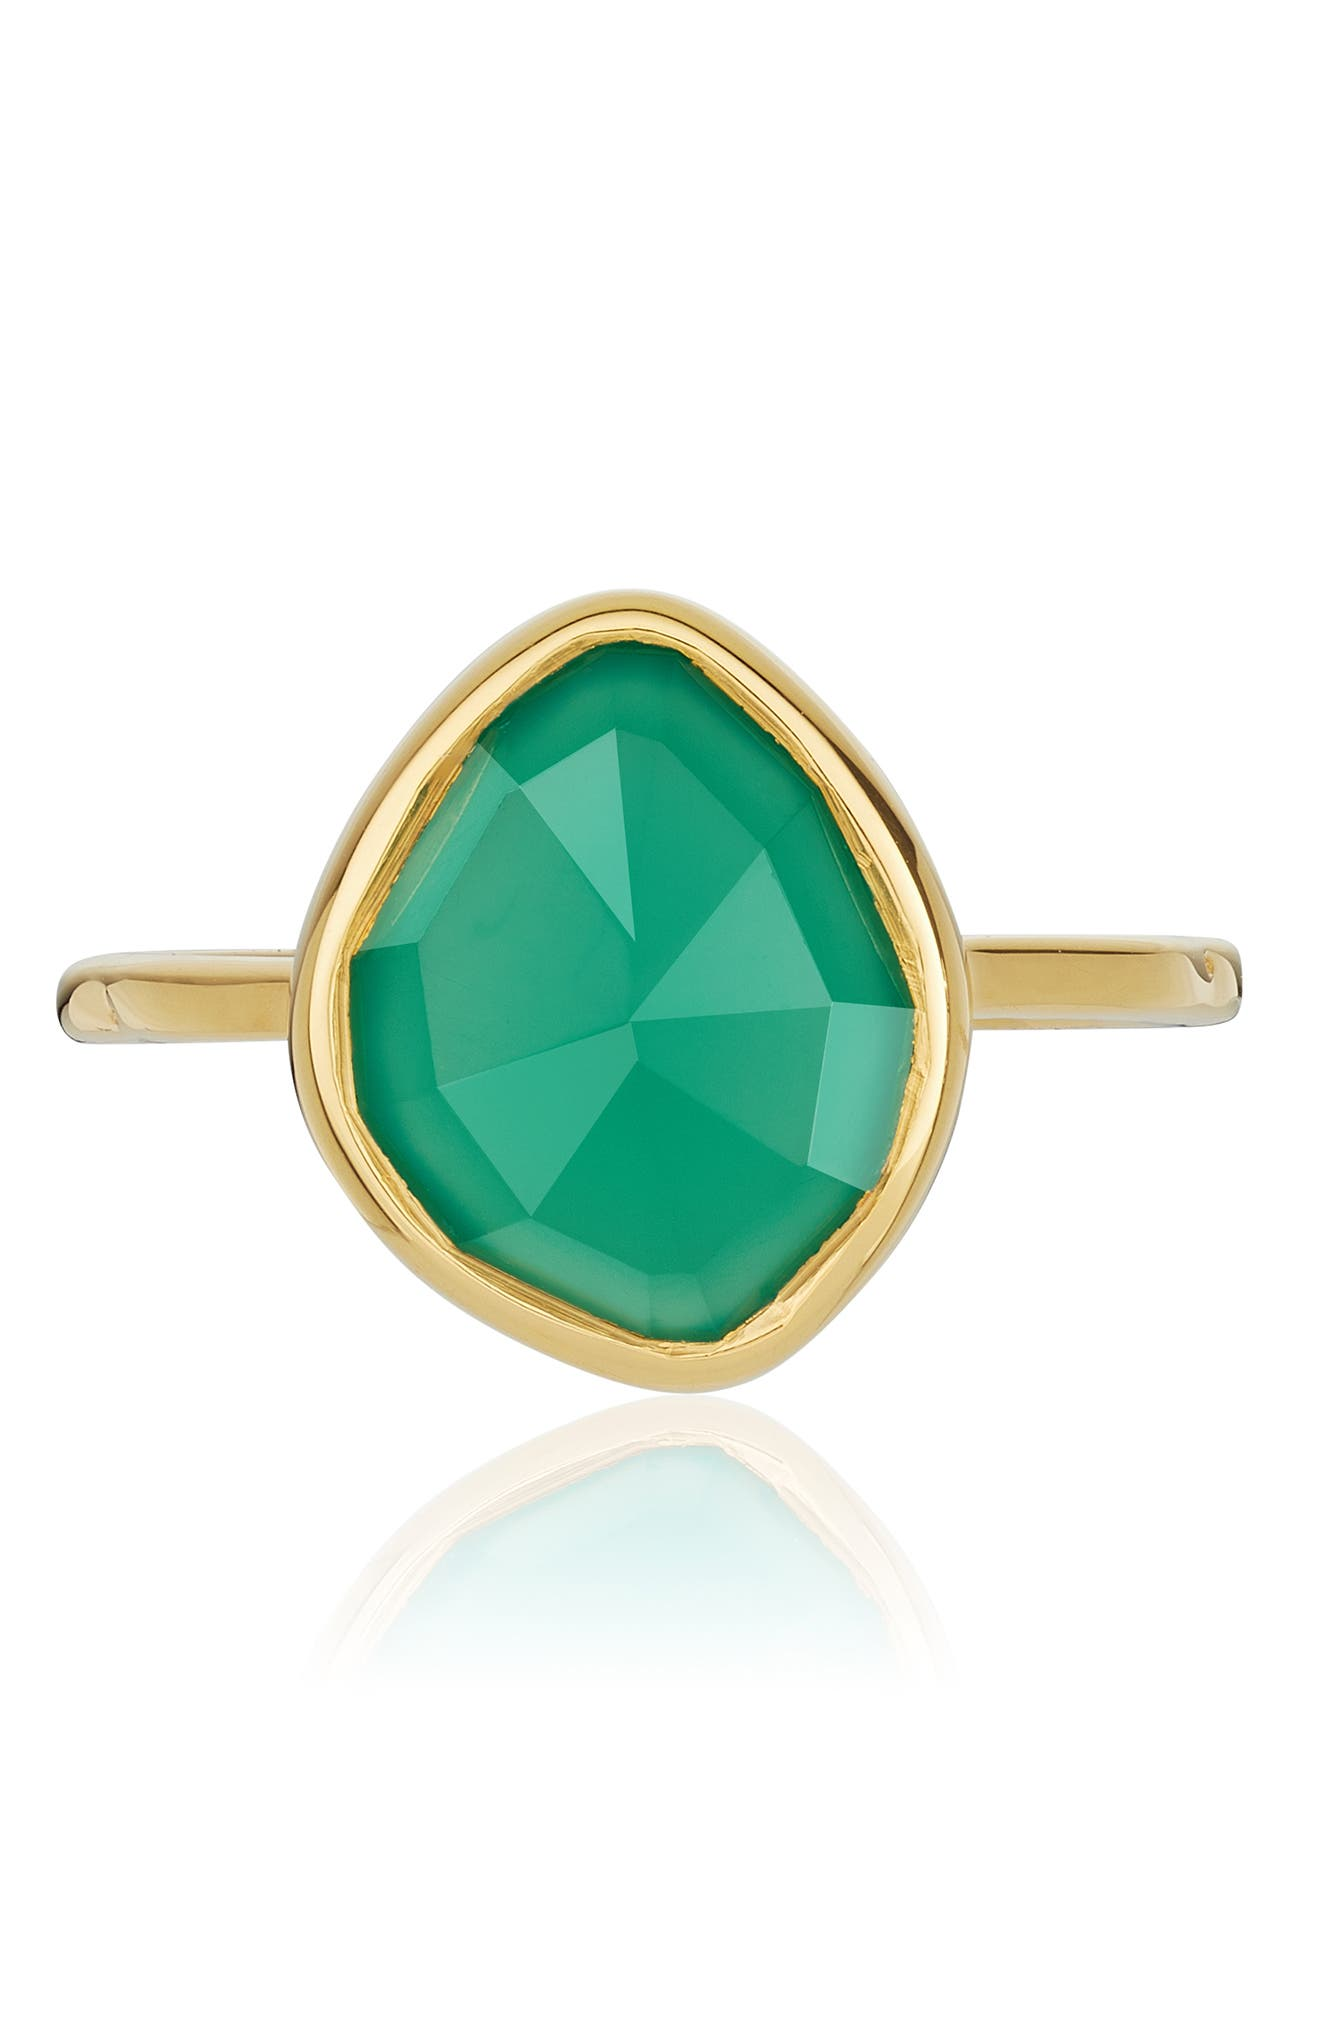 Siren Small Nugget Stacking Ring,                             Alternate thumbnail 2, color,                             Gold/ Green Onyx